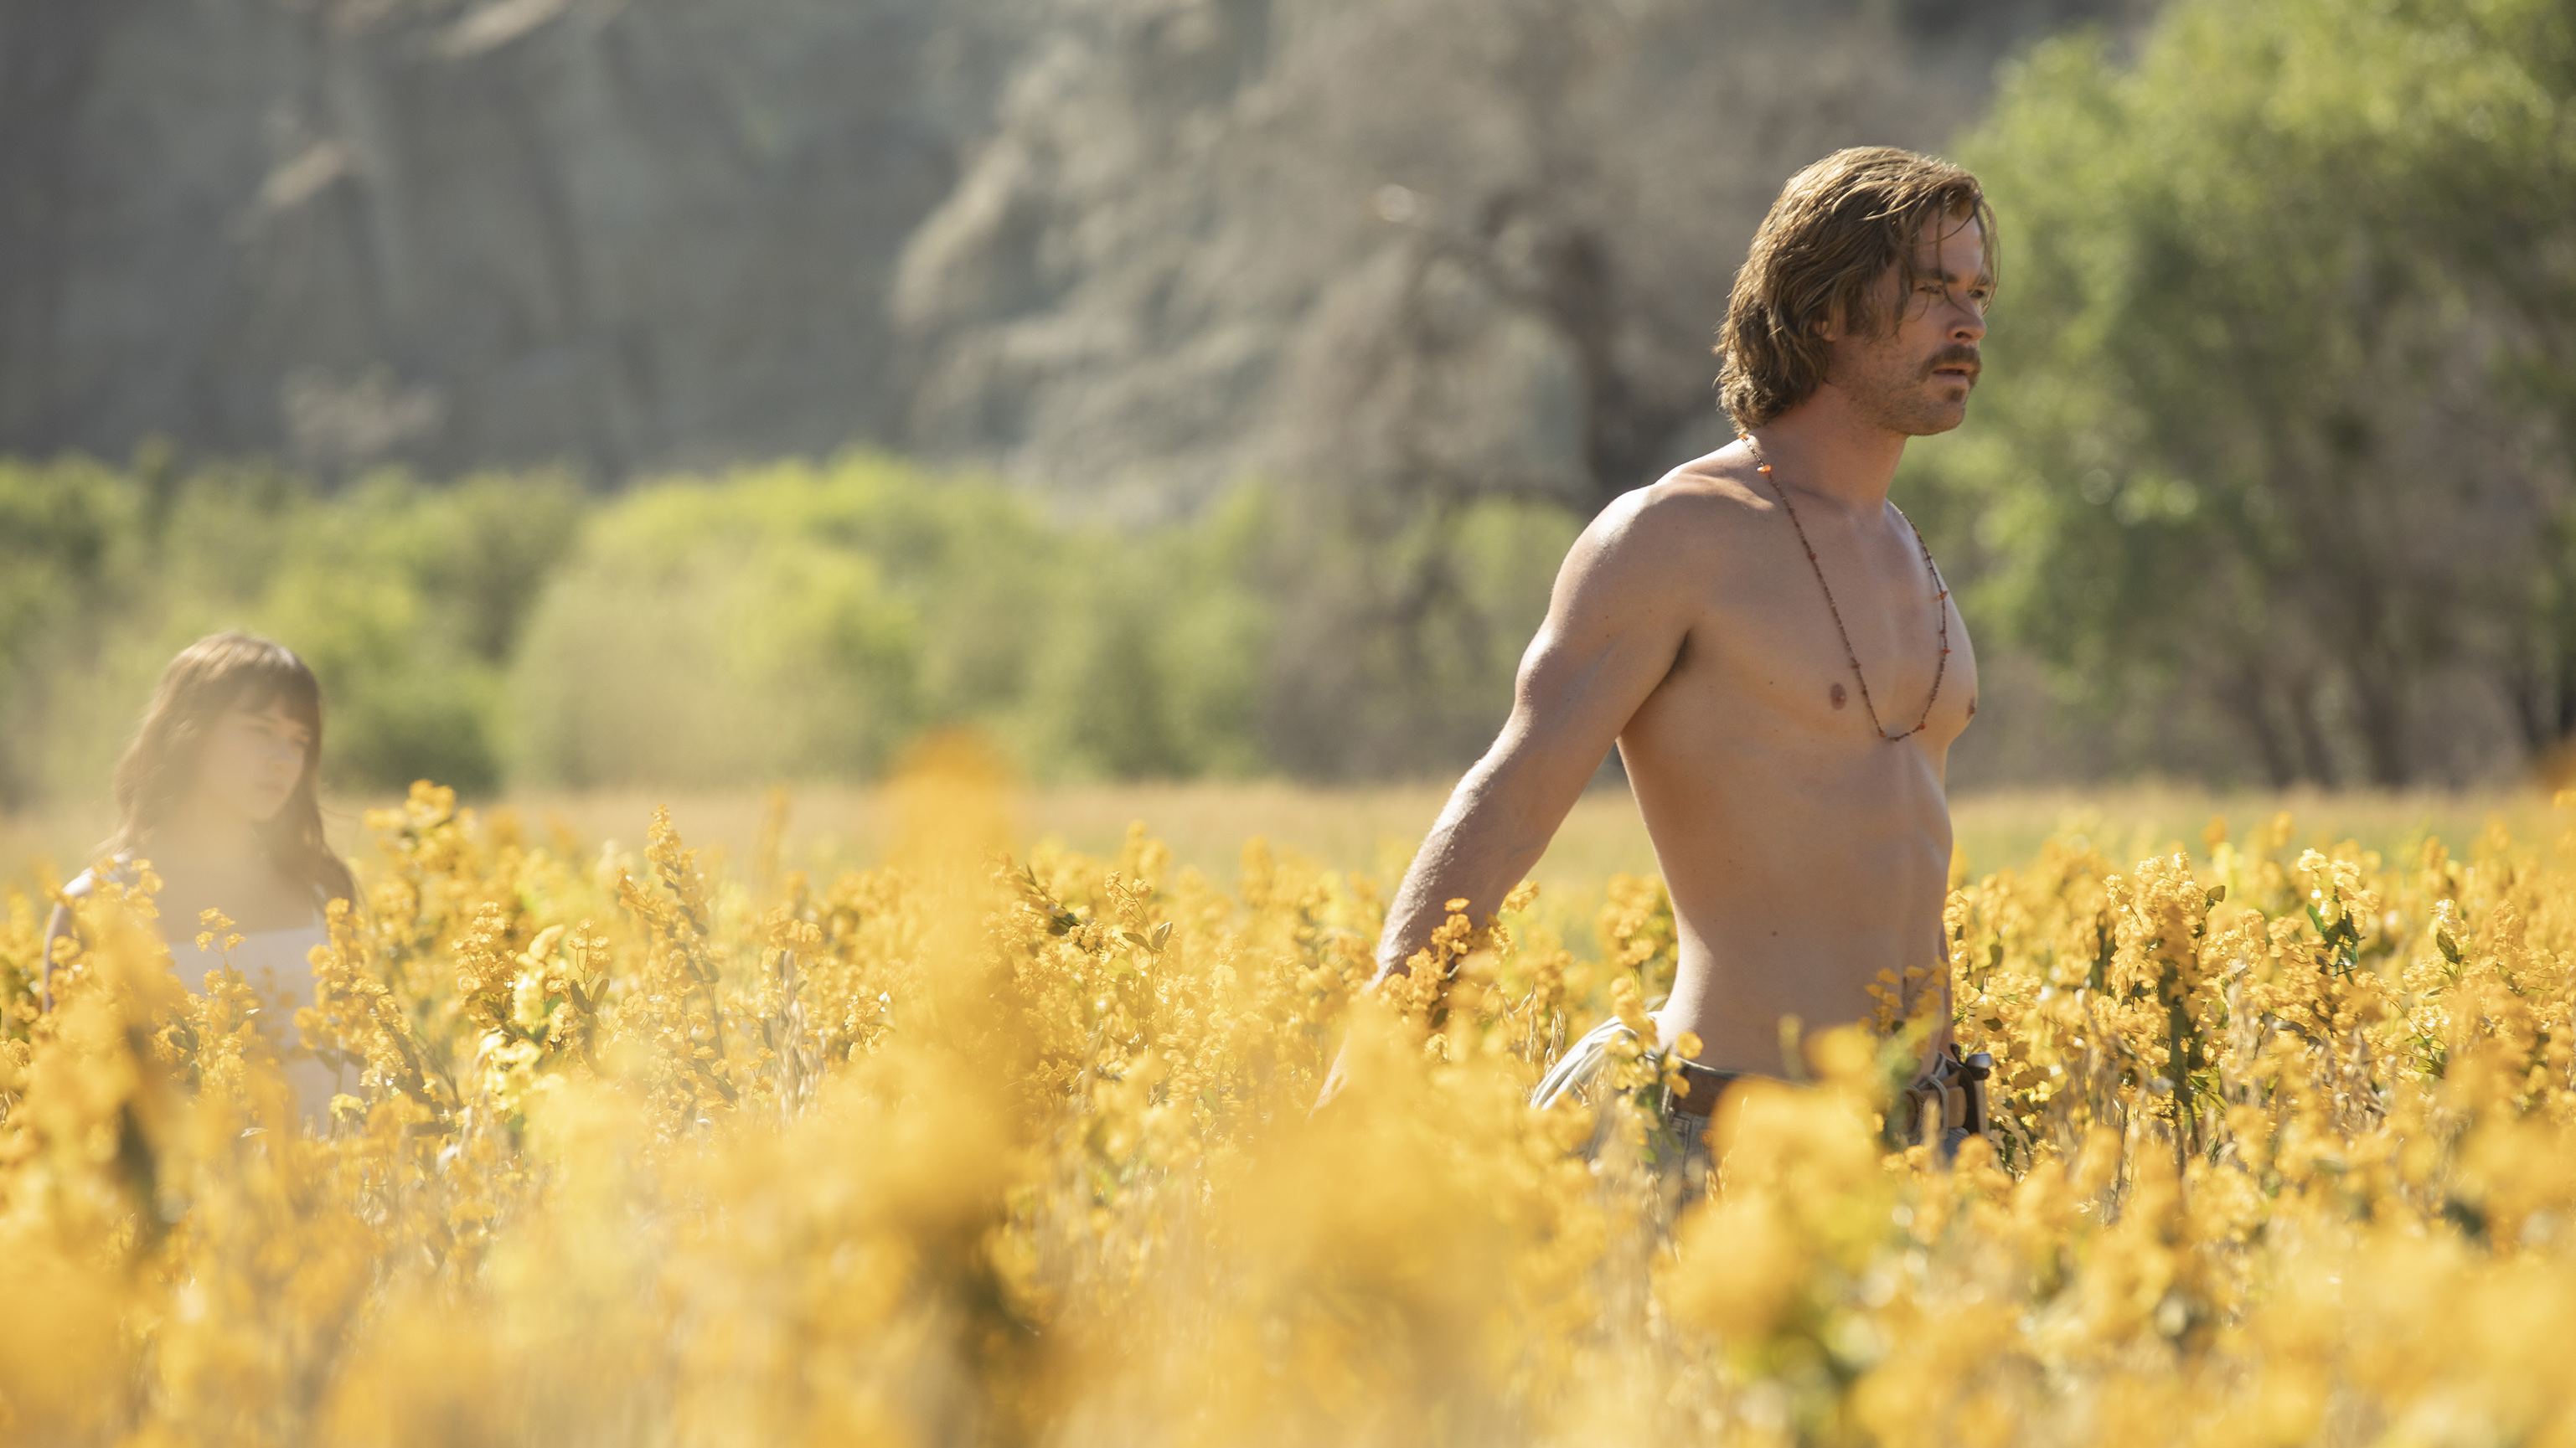 'Bad Times At The El Royale' Is A Twisty, Neon-Lit Neo-Noir